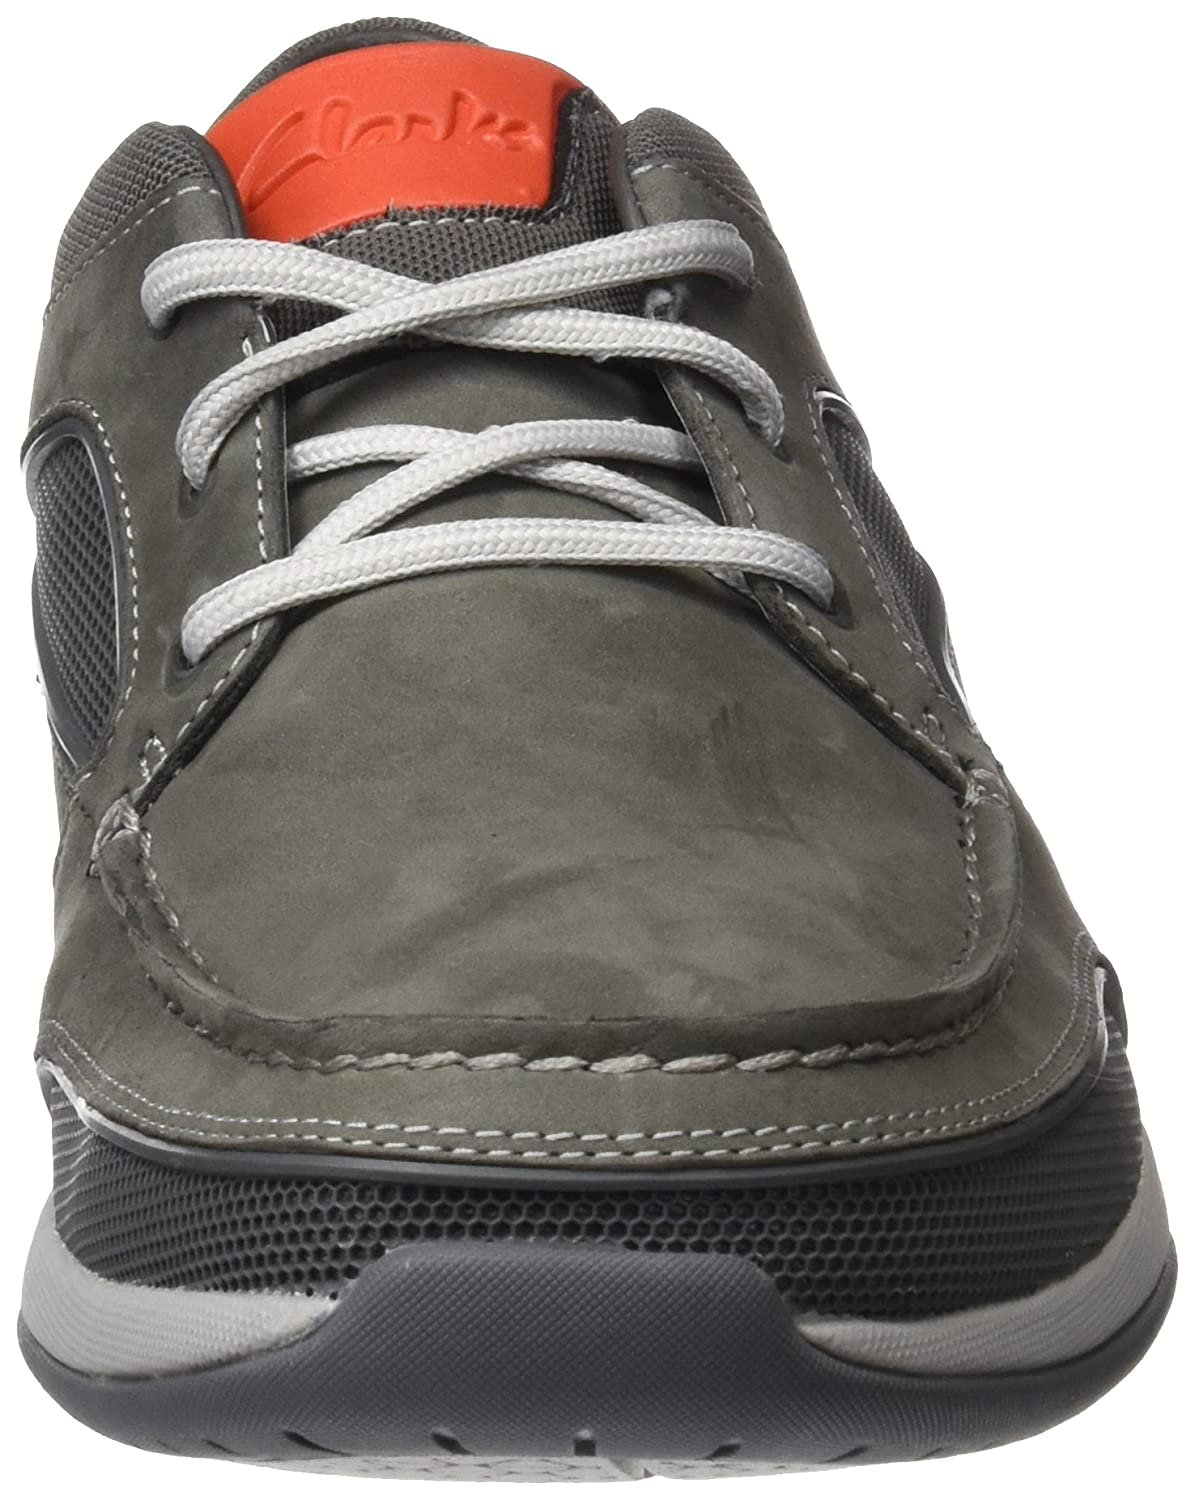 2b2072d697820 Clarks Men's Ormand Sail Dark Grey Nubuck Leather Boat Shoes-6.5  (91261252807065): Buy Online at Low Prices in India - Amazon.in